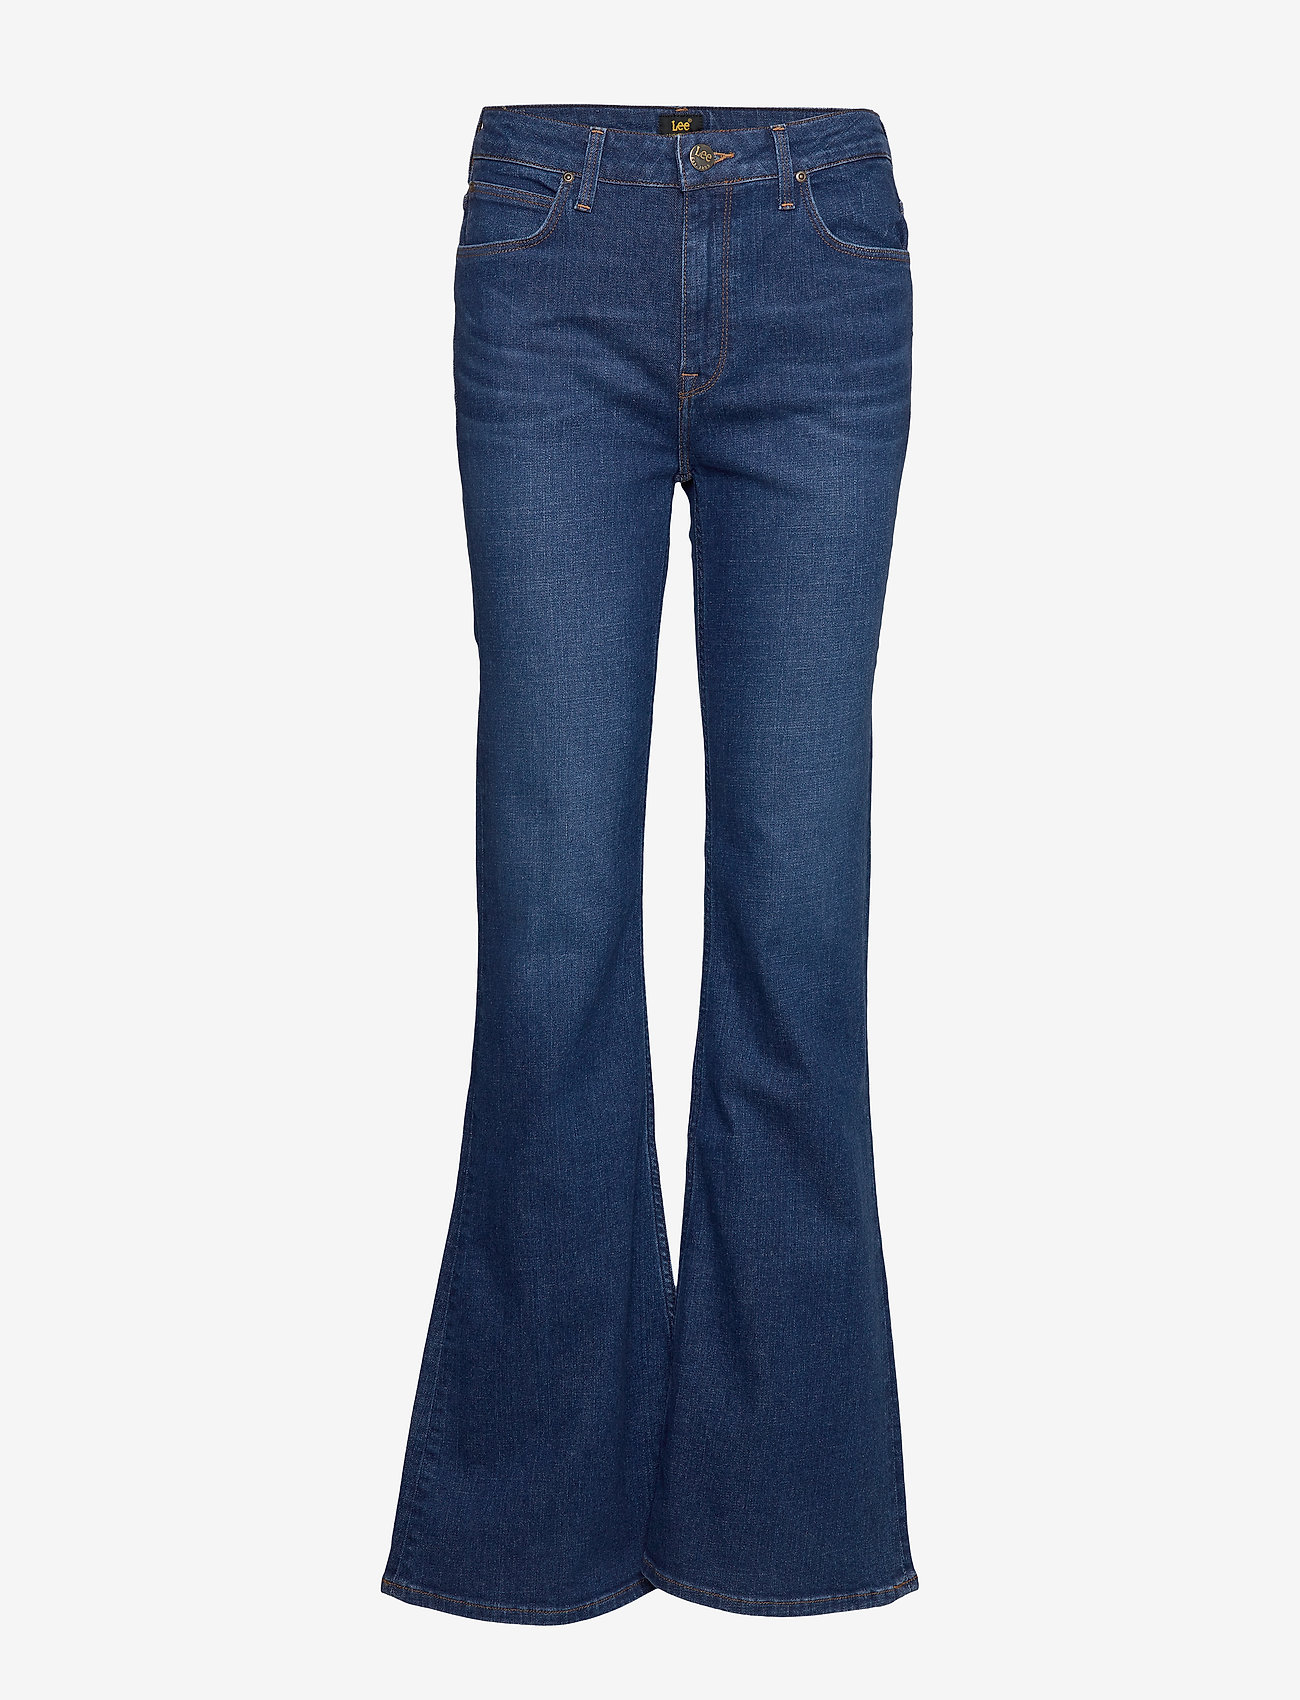 Lee Jeans - Breese - flared jeans - dark favourite - 1